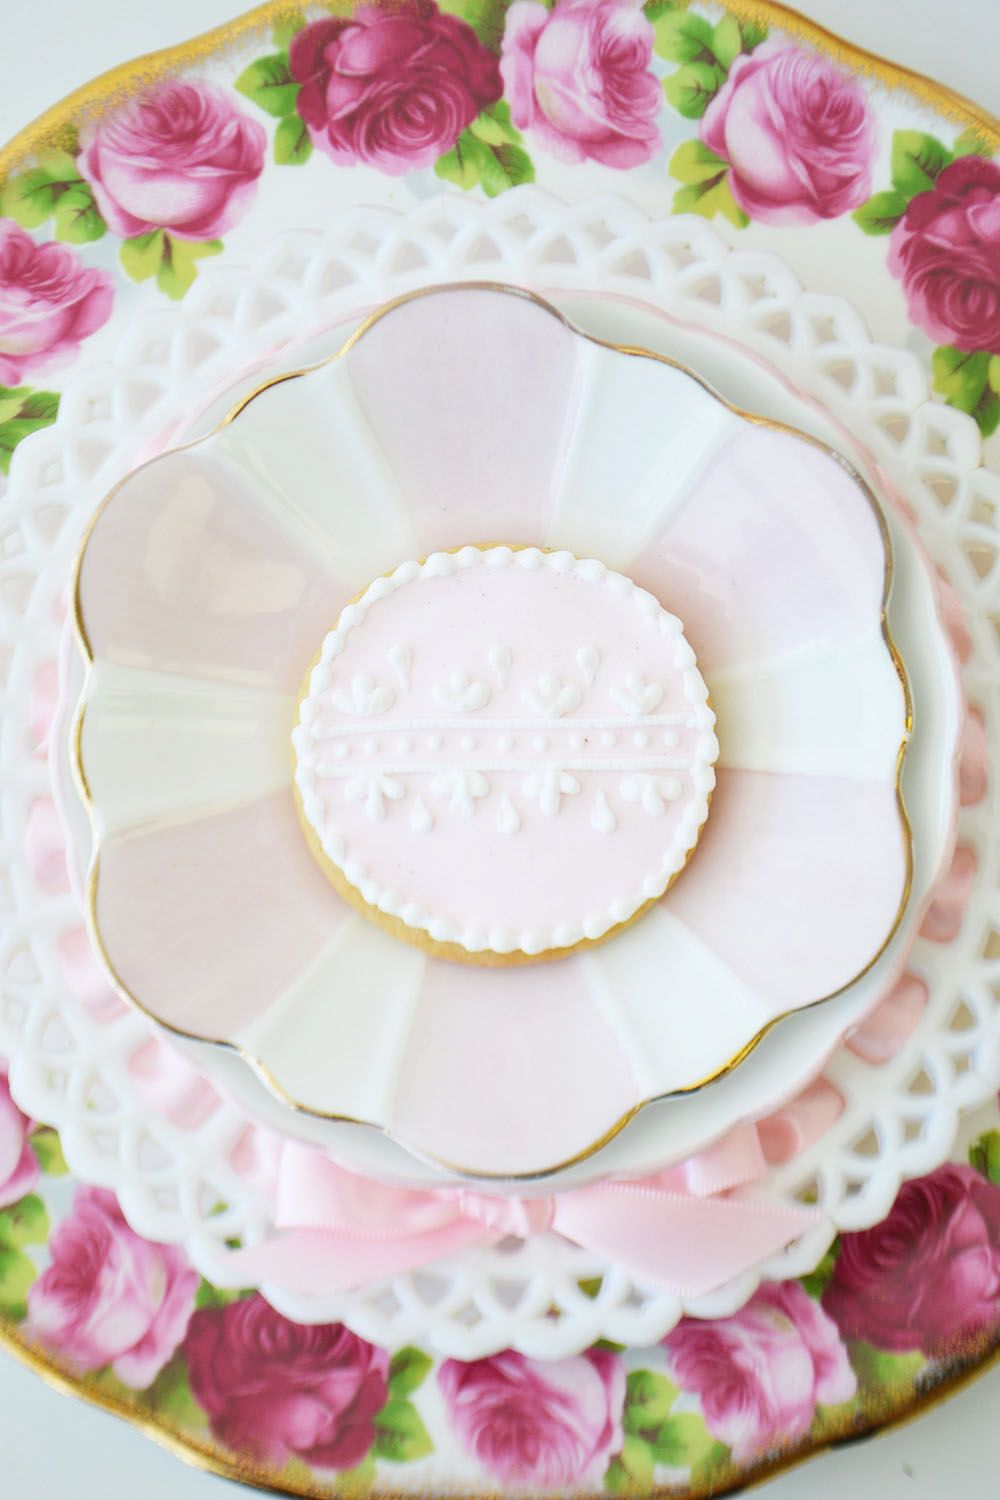 Pretty Pink Cookies For A Shower By Bake Sale Toronto China From Vintage Dish Rental